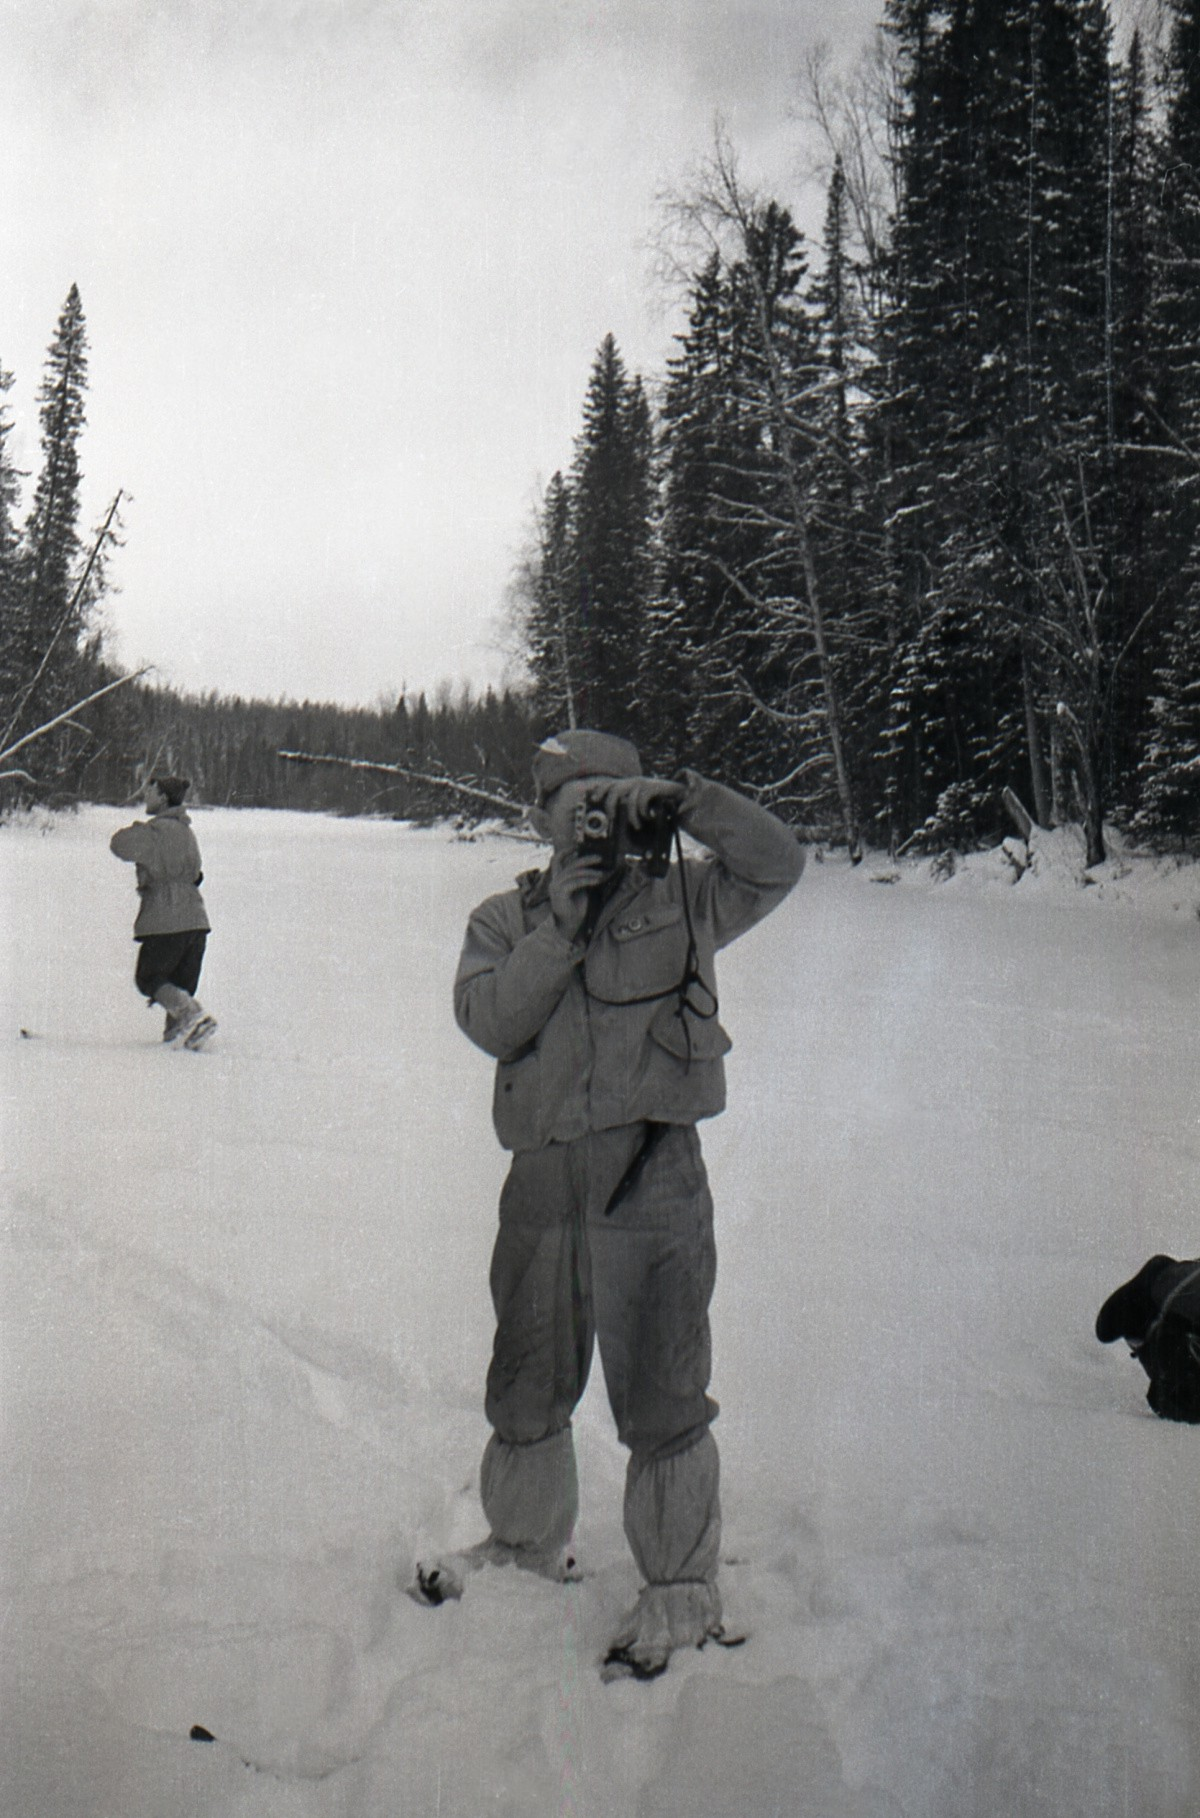 Krivonishchenko reverse angle taking a photo of Thibeaux-Brignolle